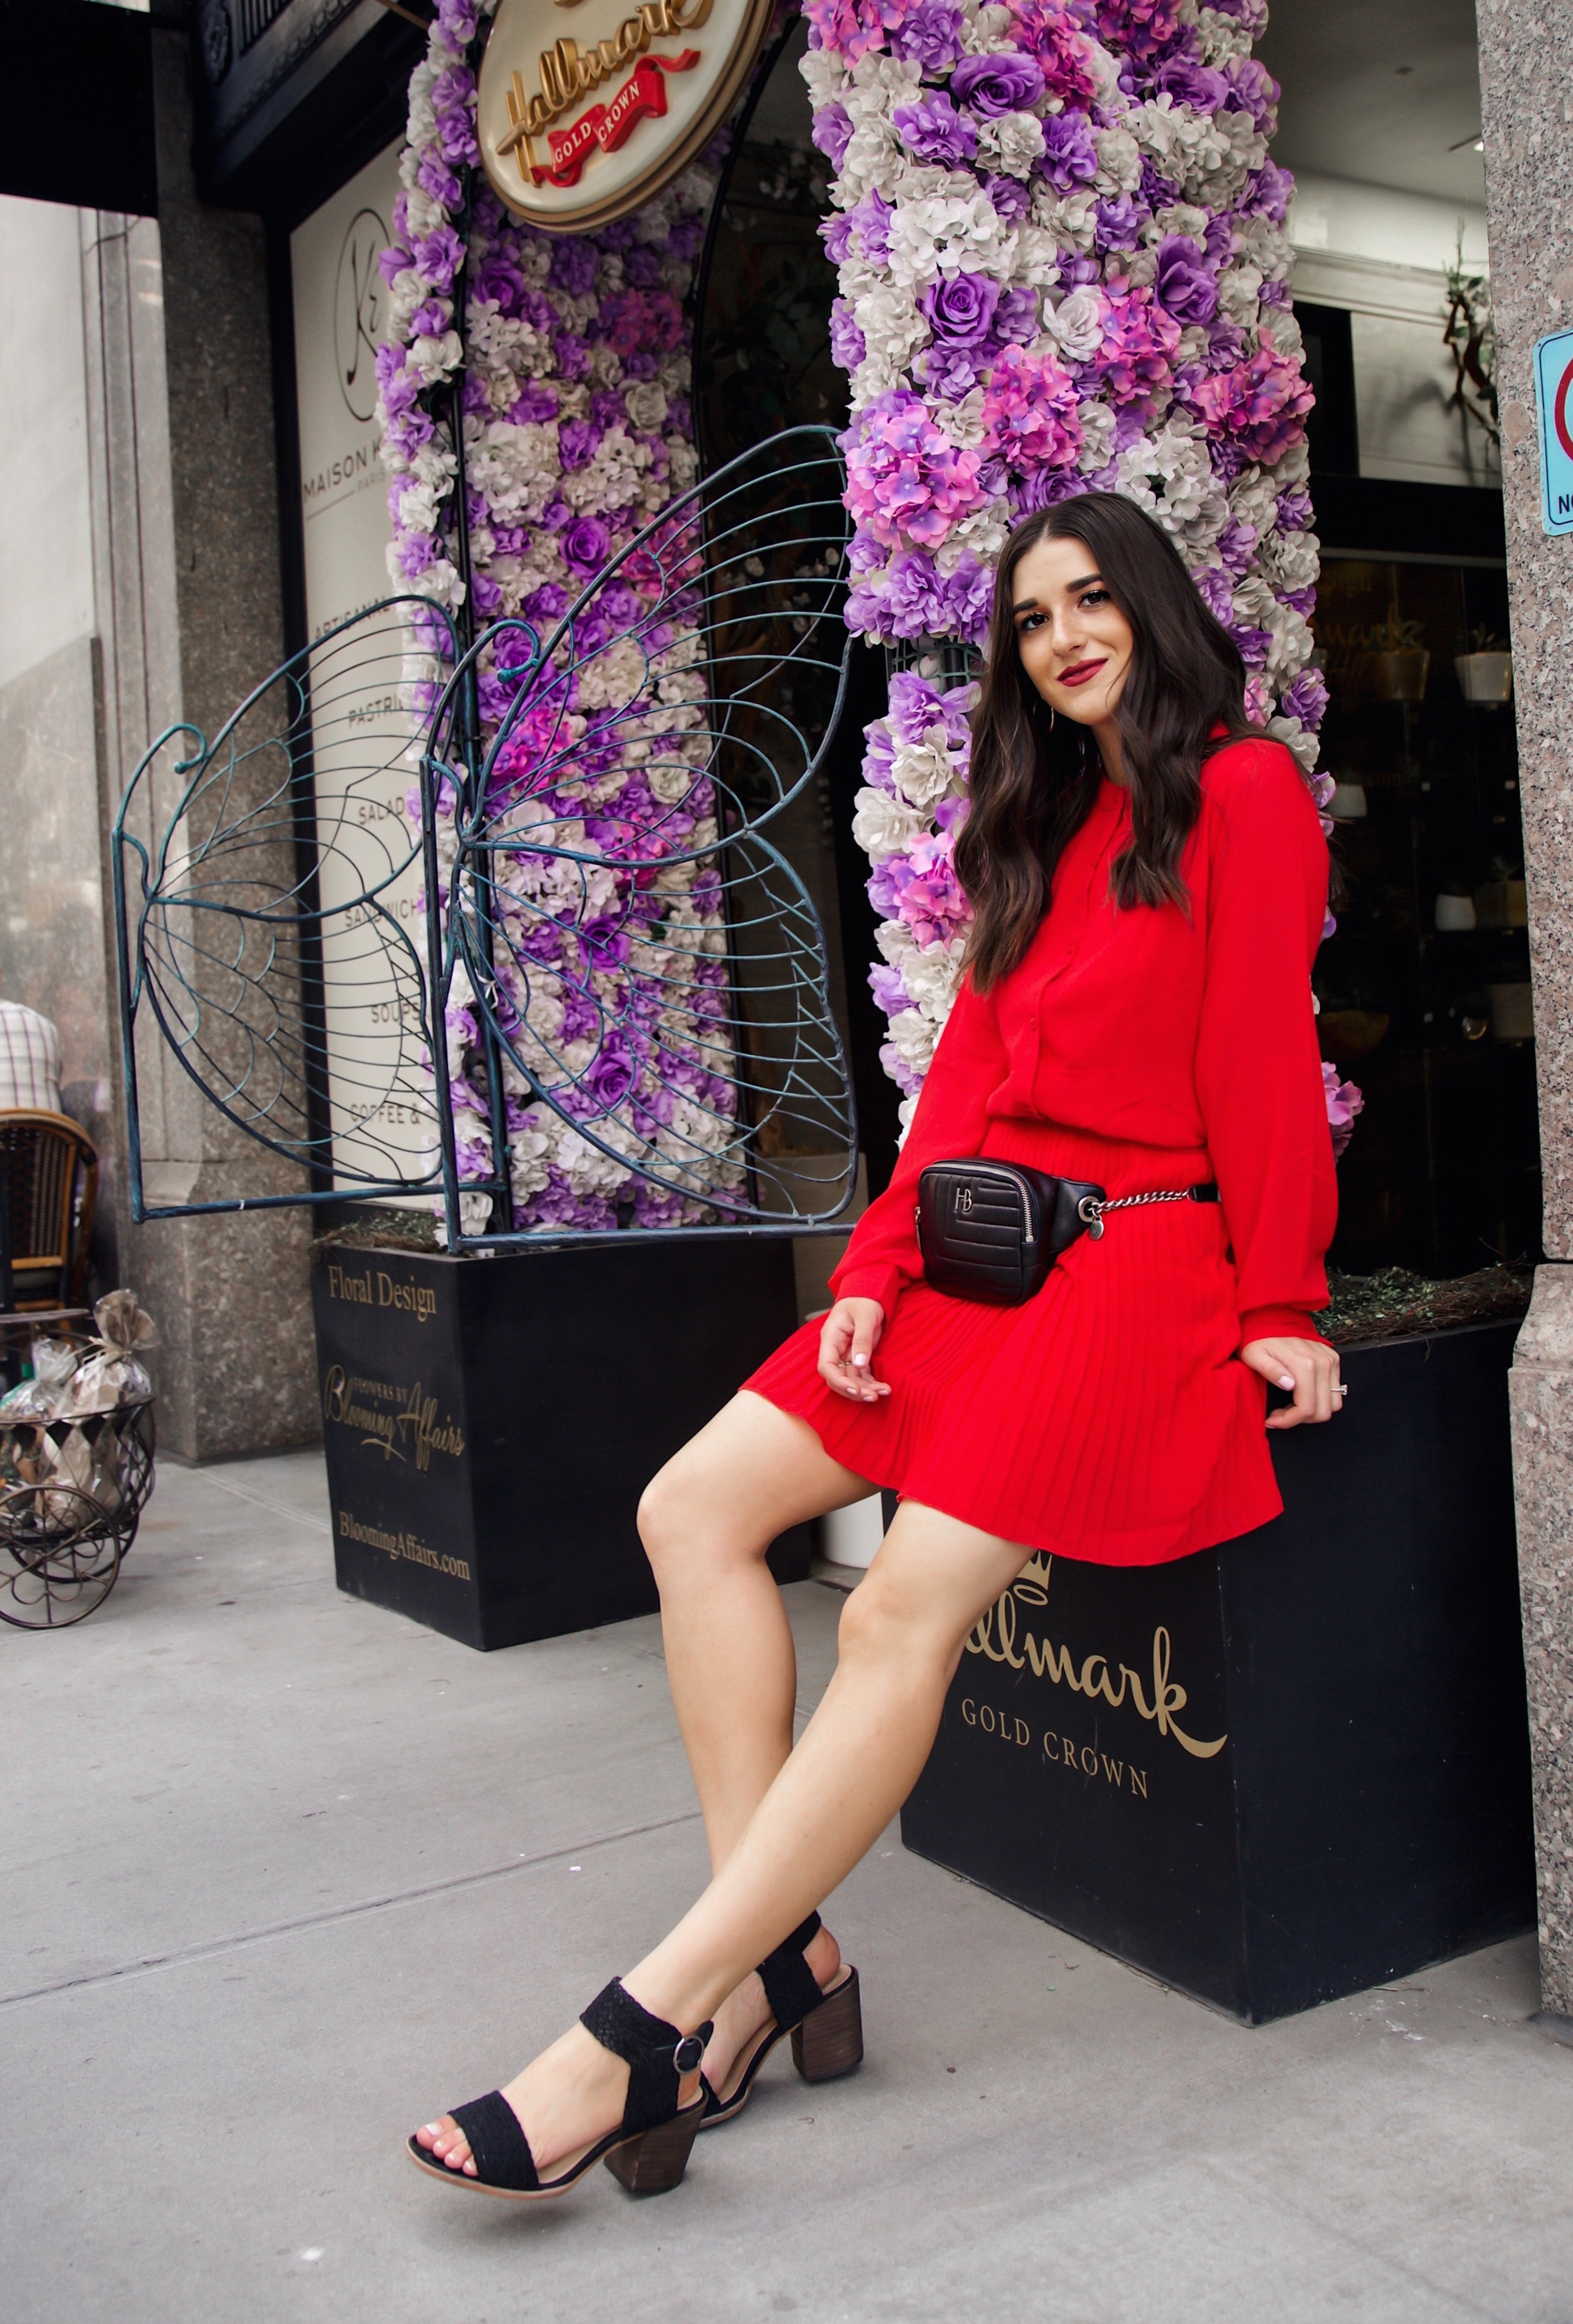 What Do Bloggers Do With All The Free Products They Receive Red Pleated Dress Black Belt Bag Esther Santer Fashion Blog NYC Street Style Blogger Outfit OOTD Trendy ASOS Vince Camuto Braided Sandals Shoes Hair Fanny Pack Women Shopping Girl Fall Summer.jpg